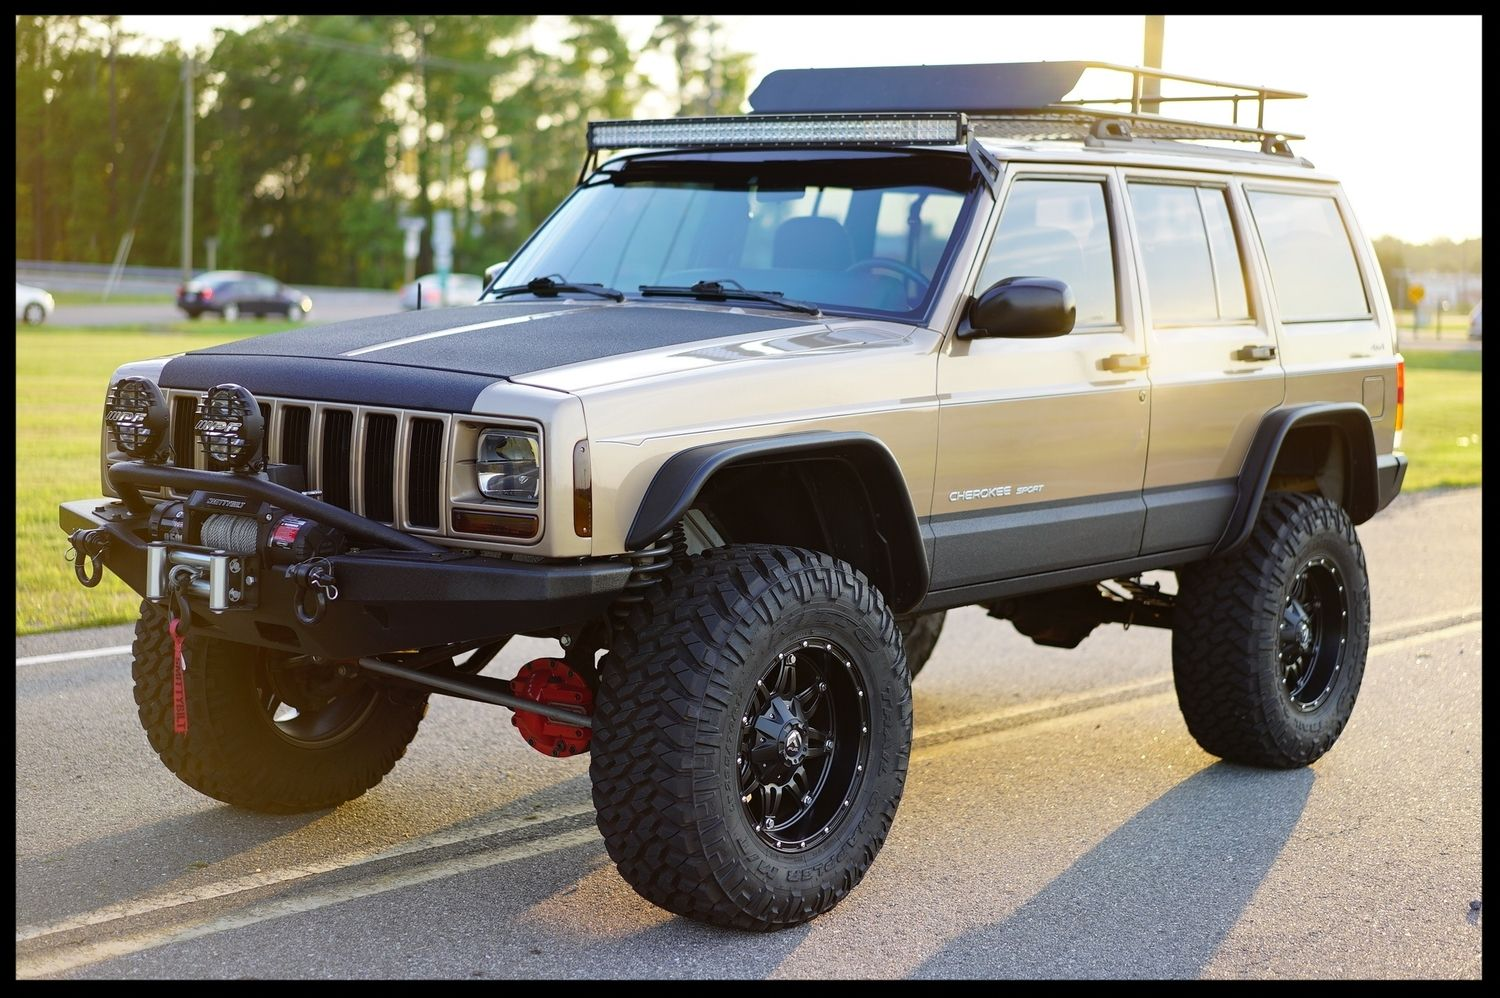 Gorgeous Lifted Cherokee Xj This Xj Has A 4 5 Full Suspension